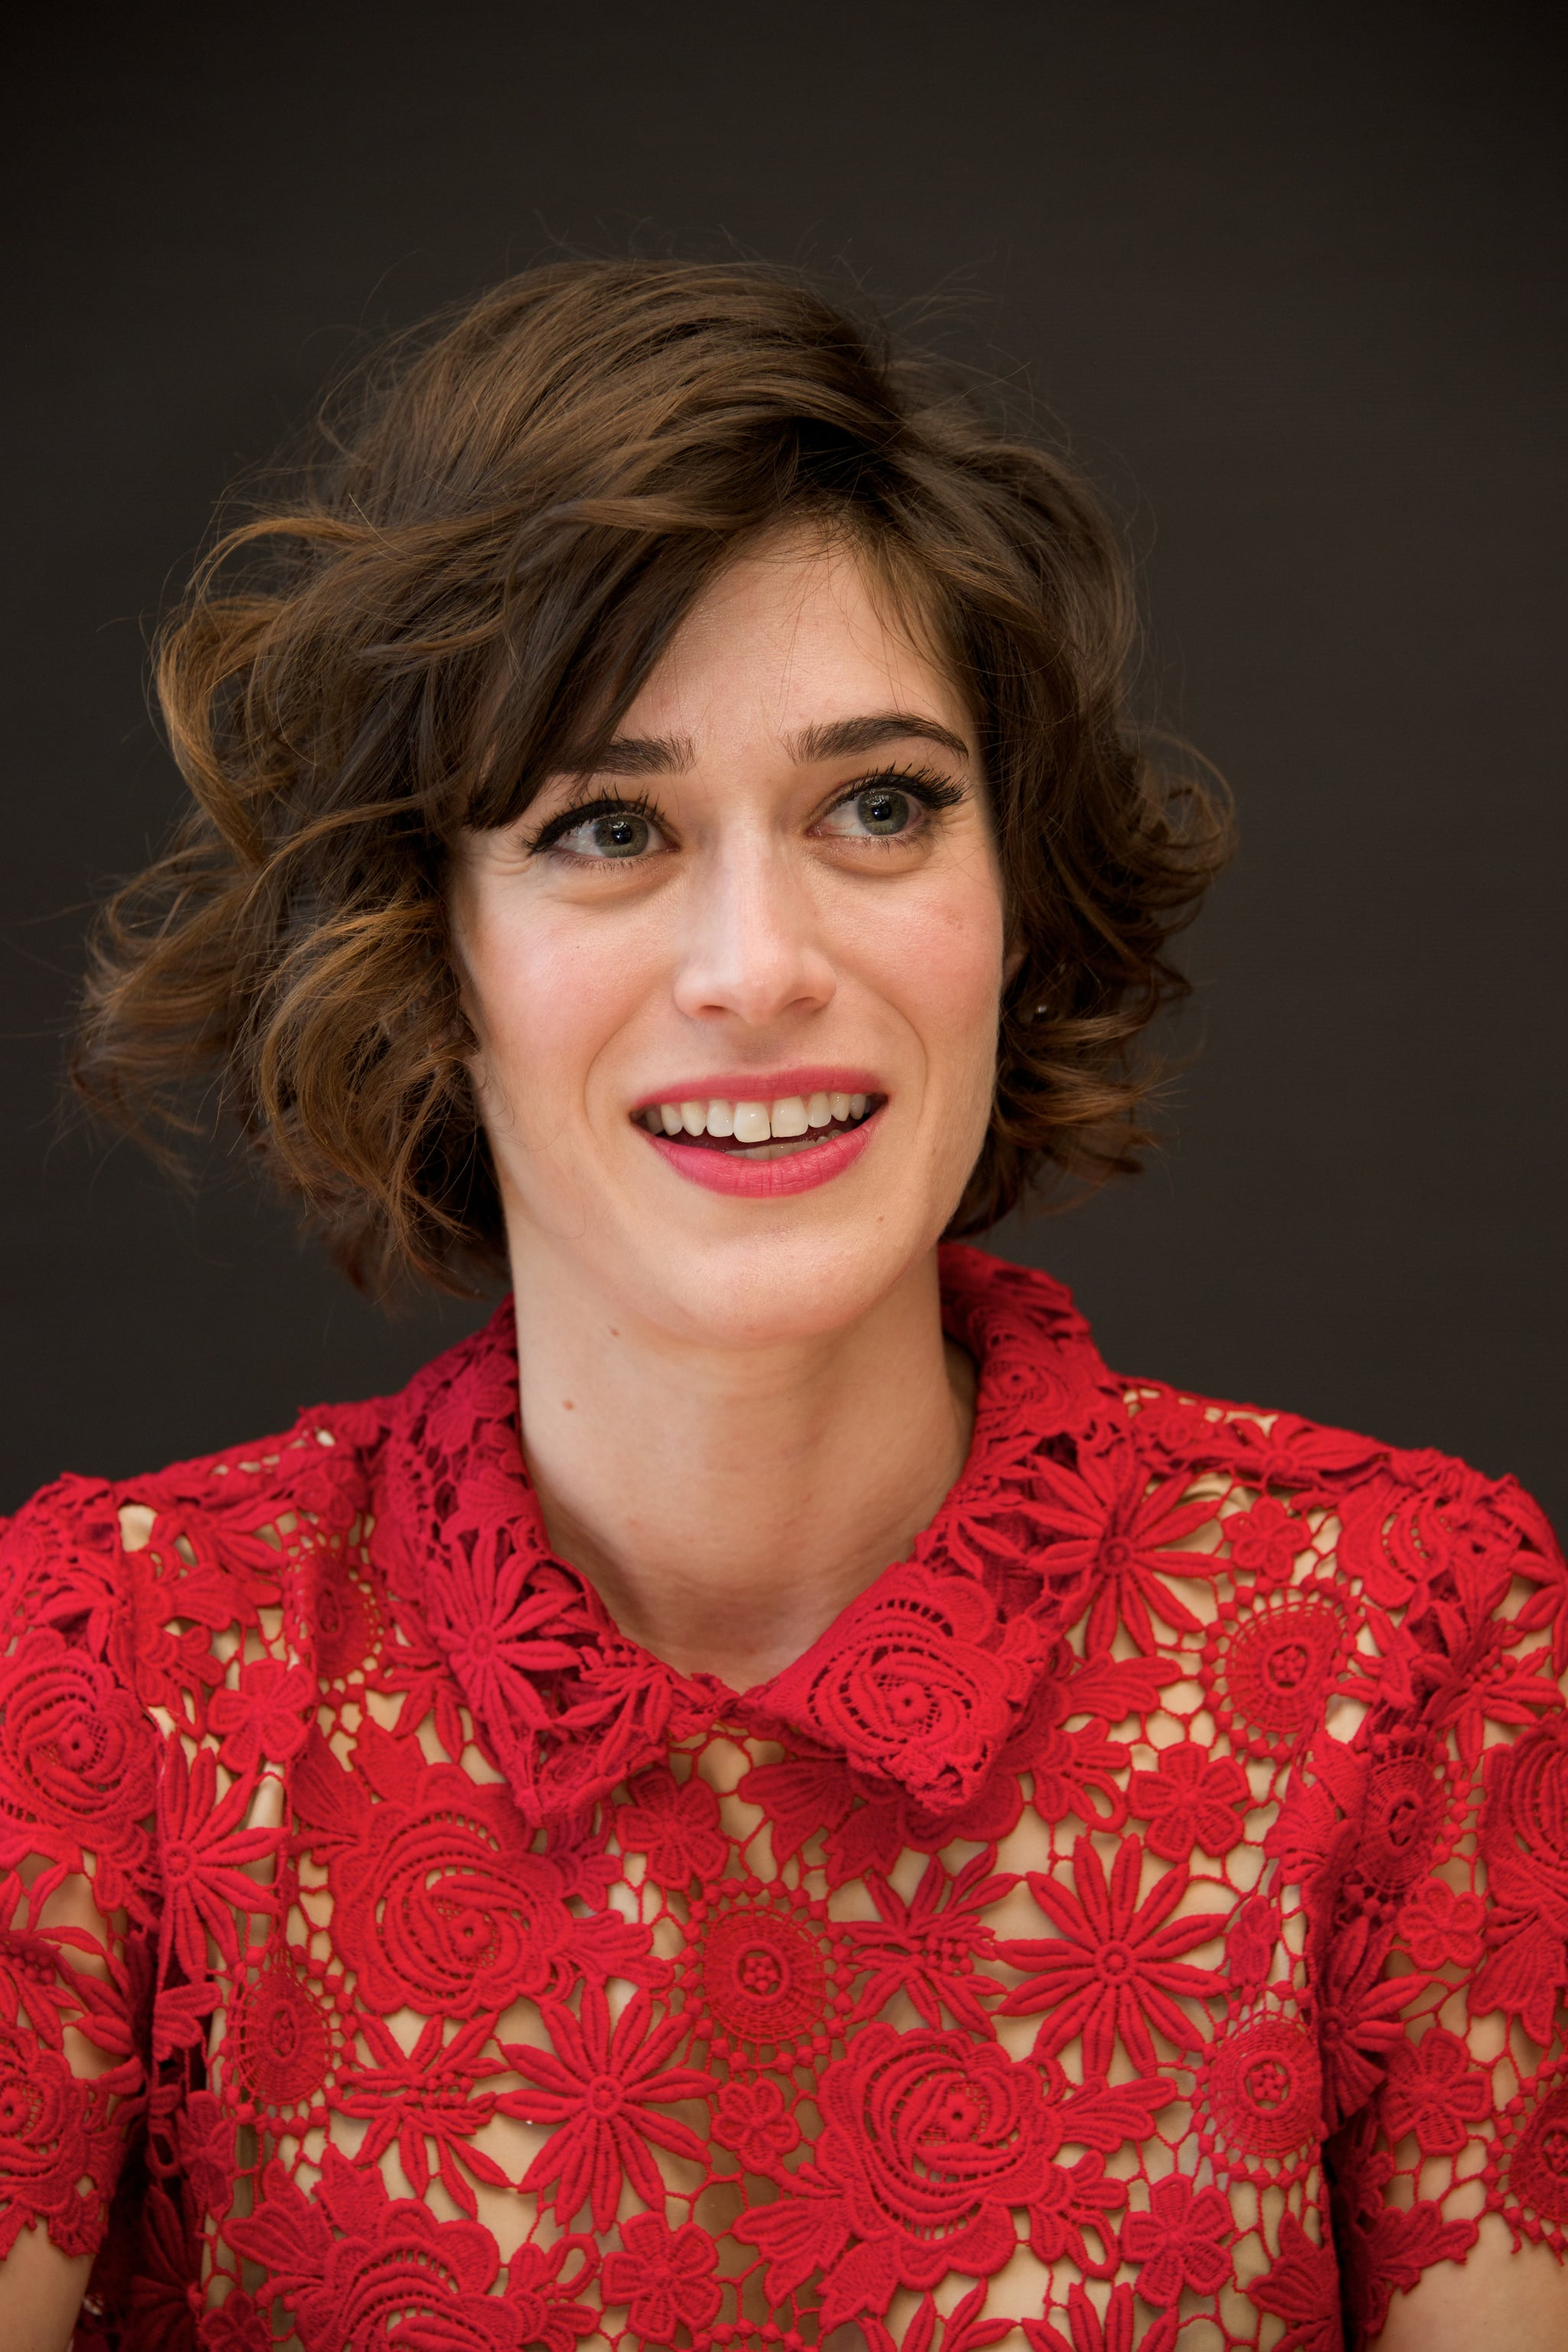 Lizzy Caplan: Now